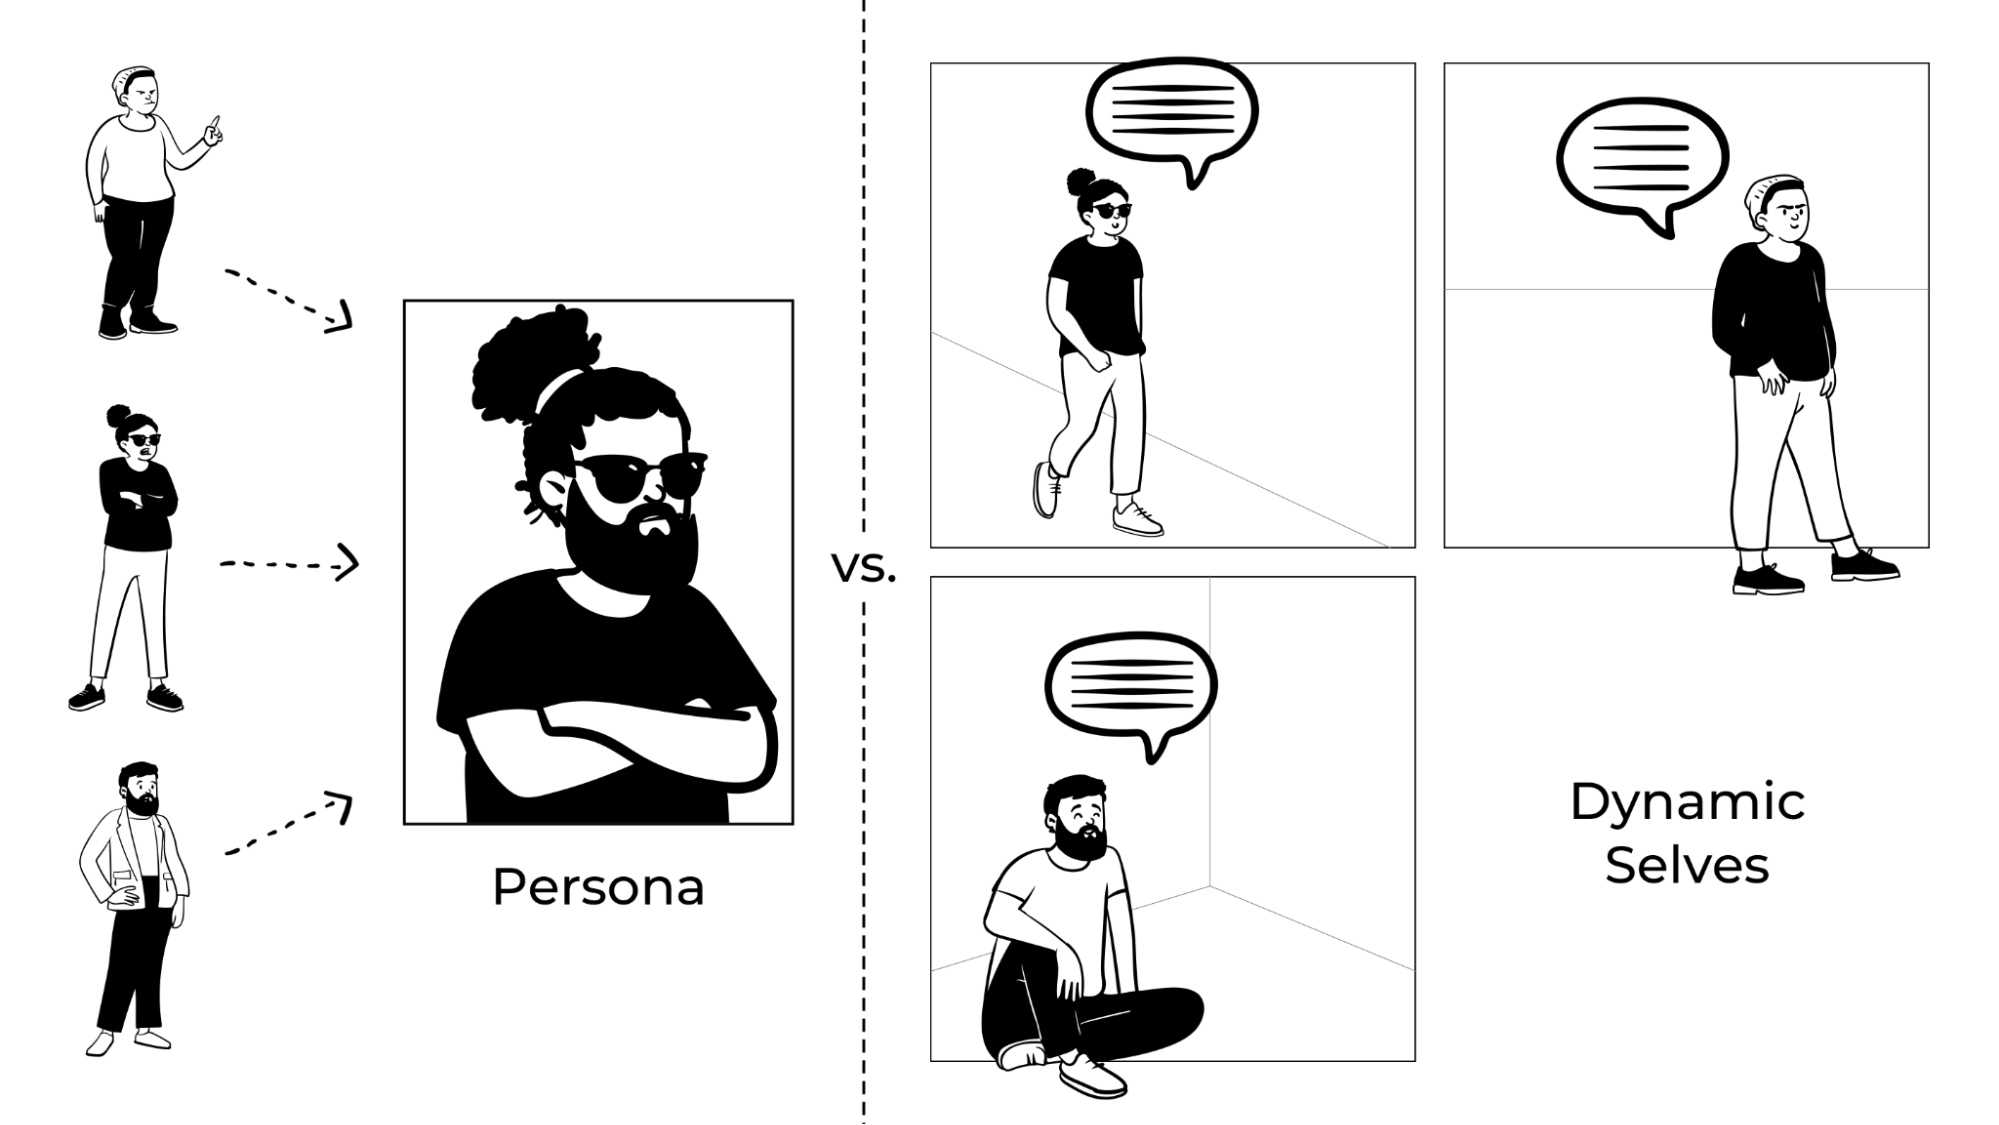 A comparison. On one side, three people are fused into one to create a persona; in the second, the three people exist as separate dynamic selves.